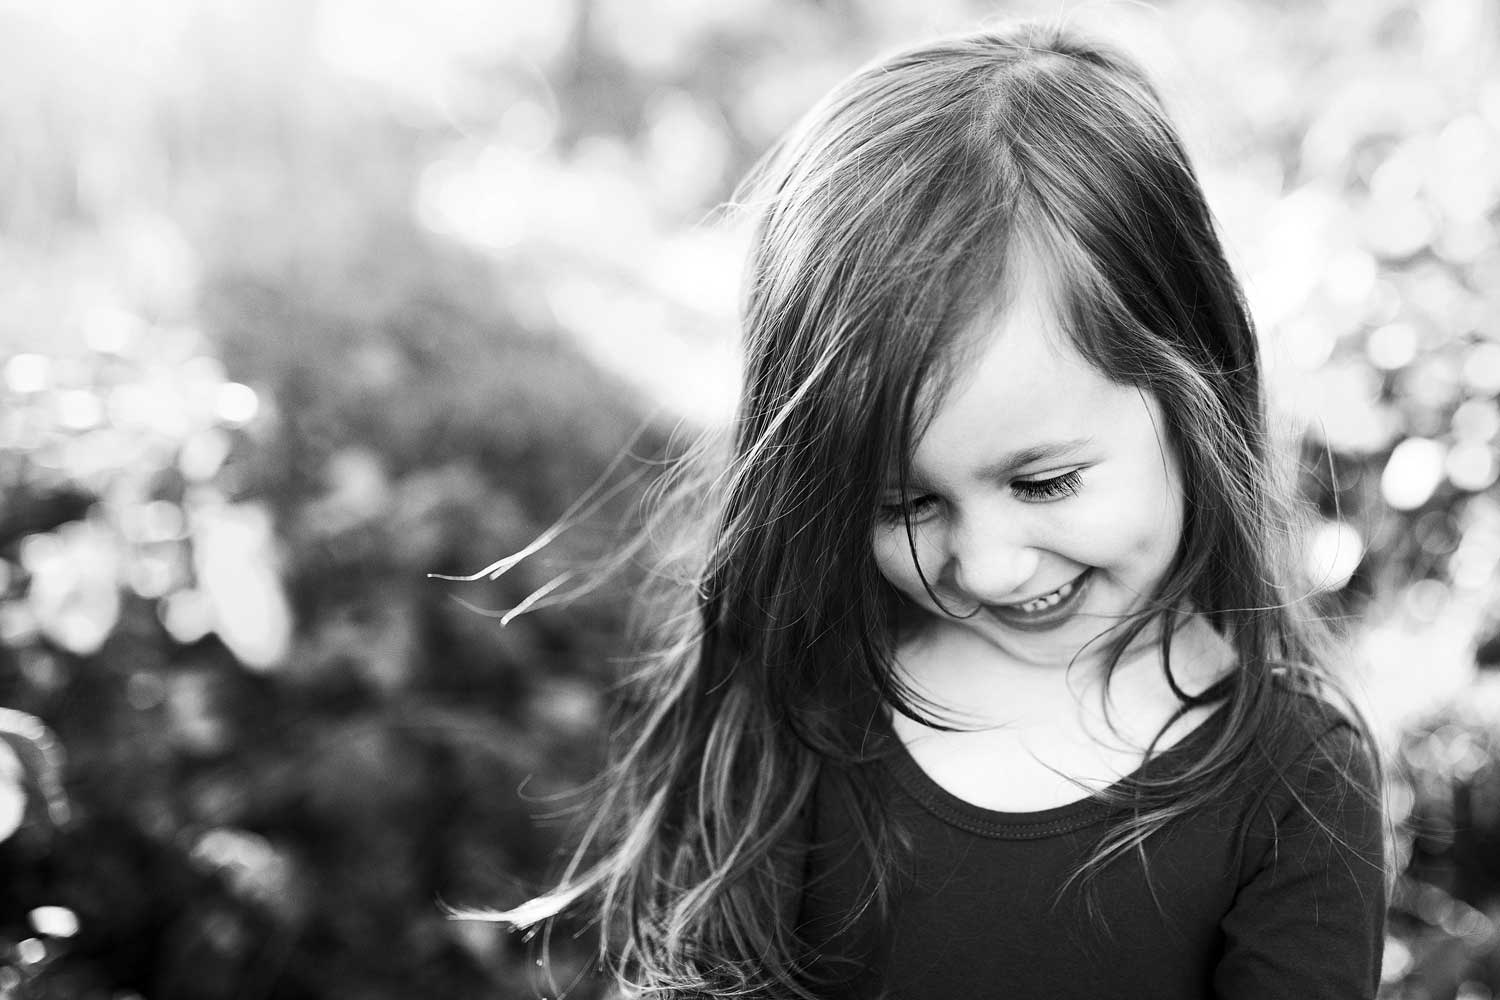 A young girl smiles as the wind blows in her hair during a photo session with Amy Wright Photography in Roseville, California.